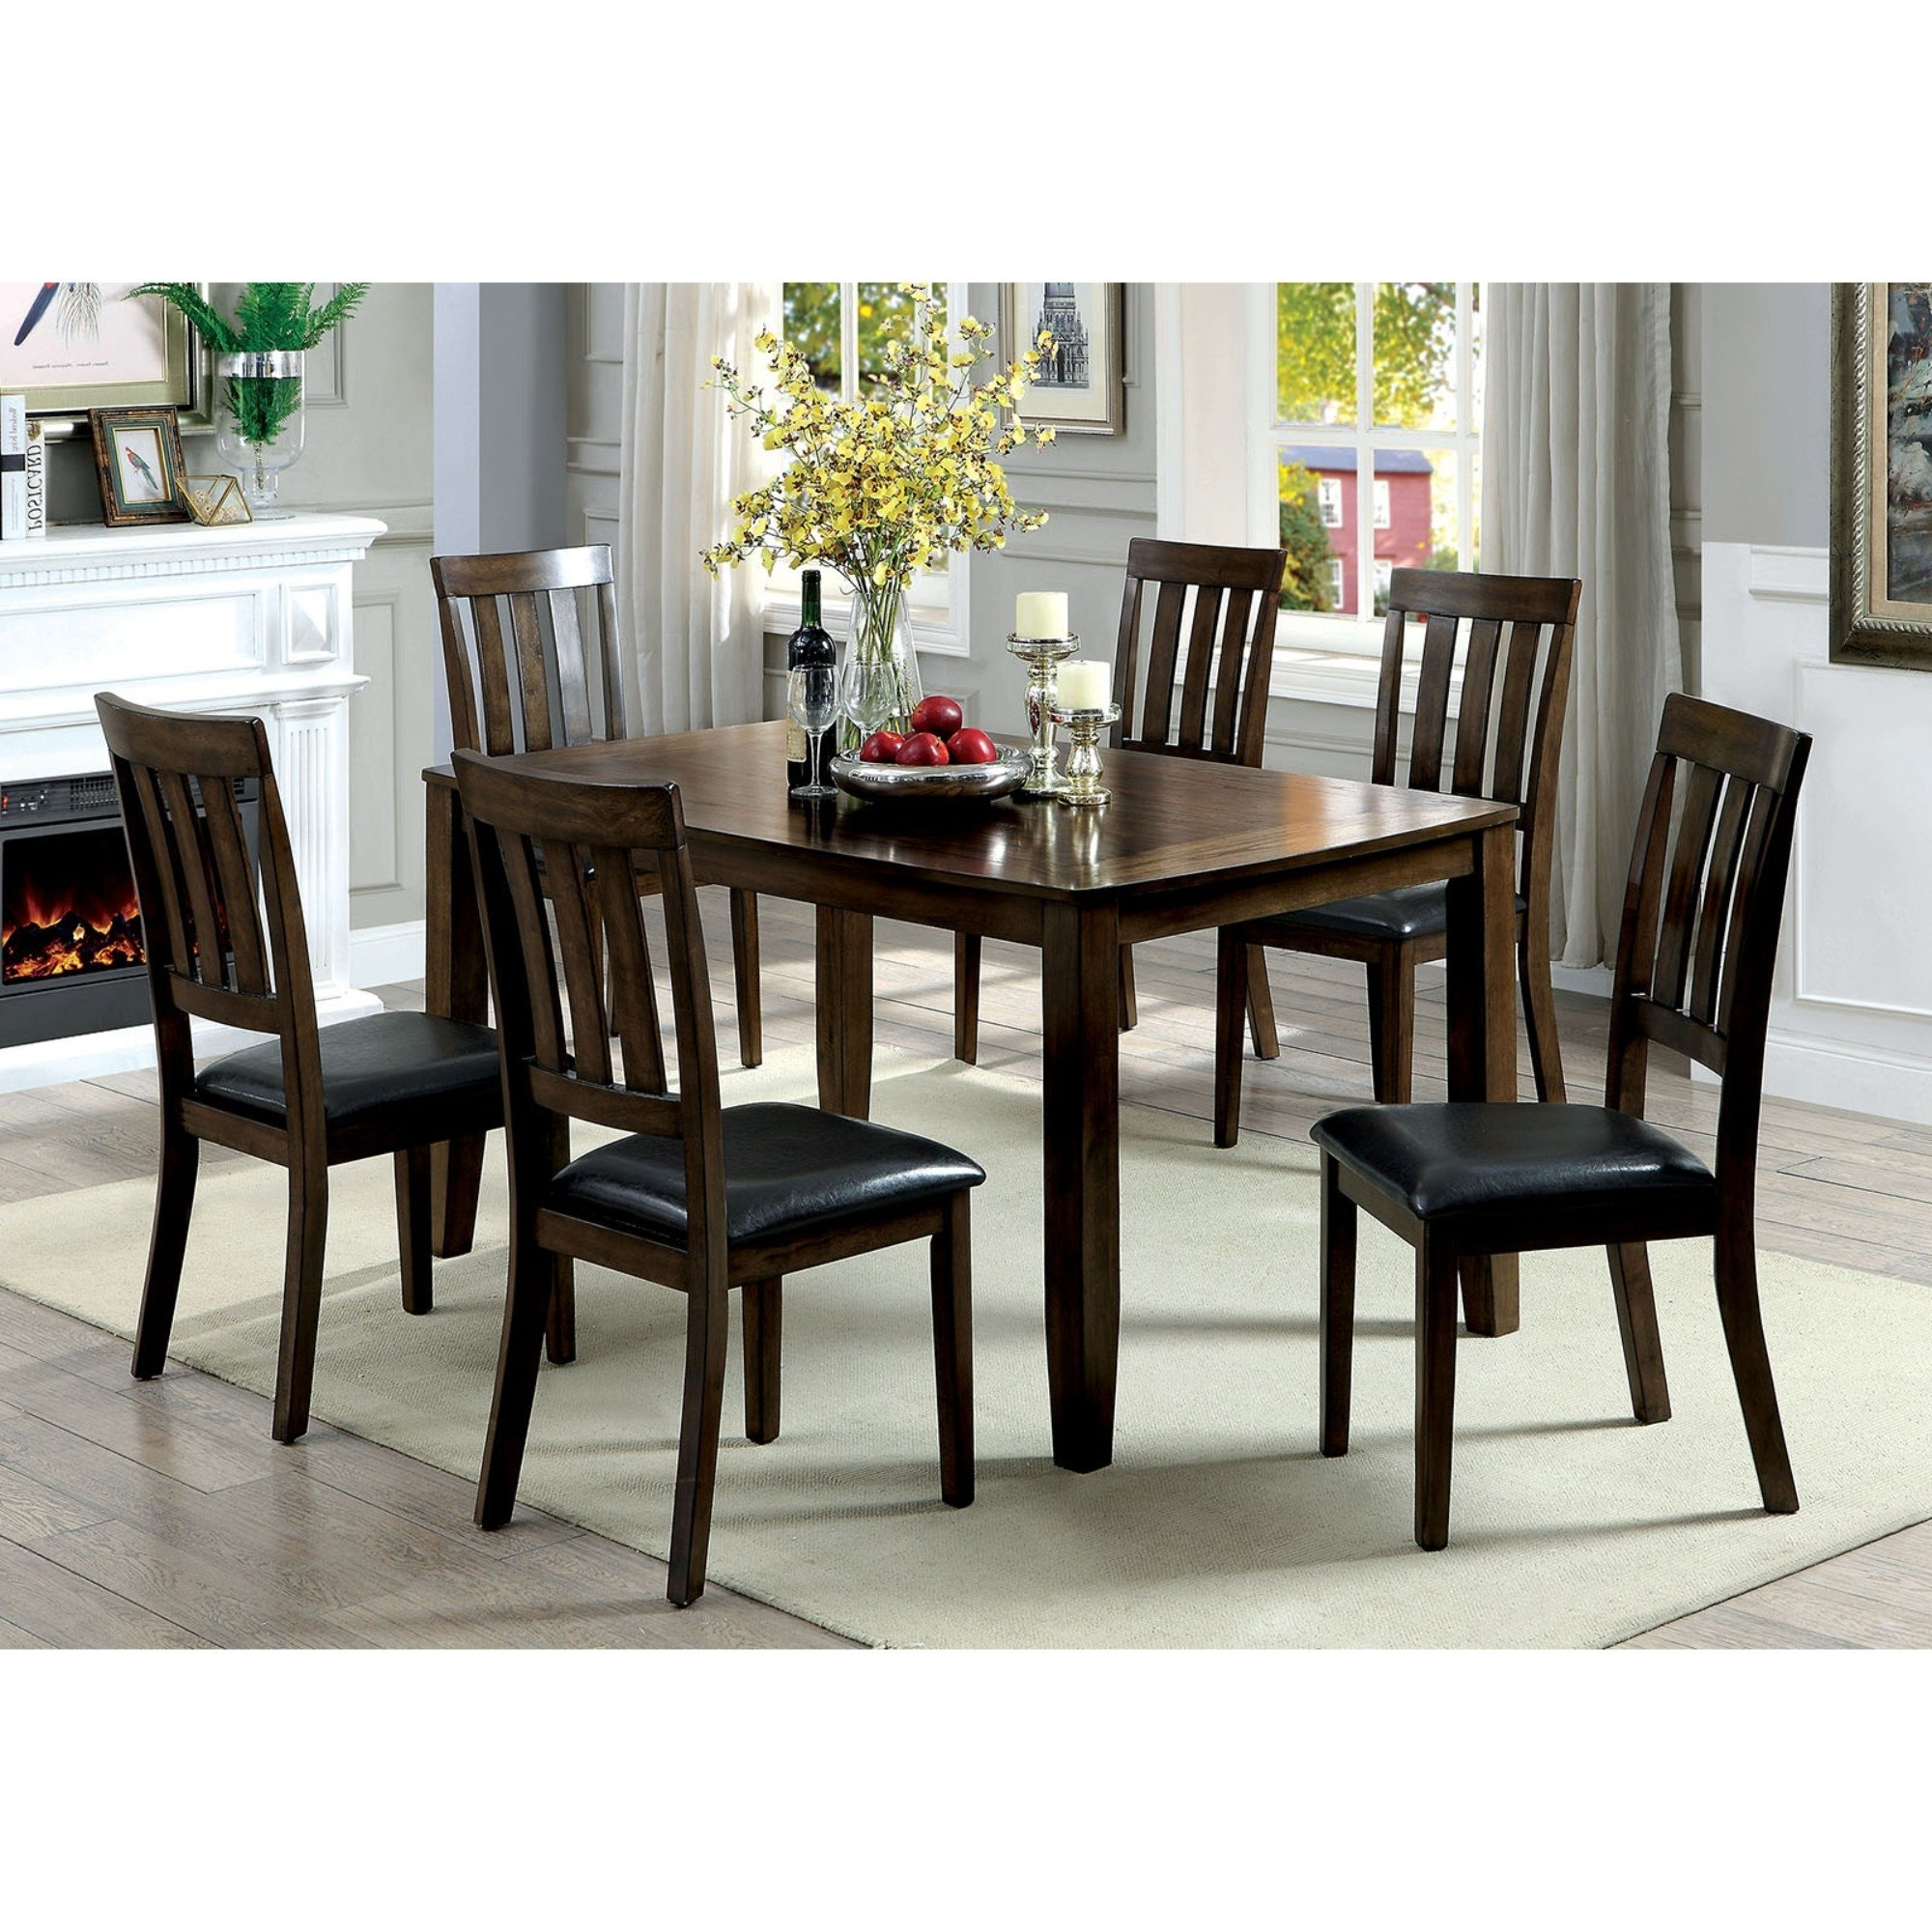 Millwood Pines Devon Wooden 7 Piece Counter Height Dining Table Set For Favorite Candice Ii Slat Back Host Chairs (View 11 of 20)